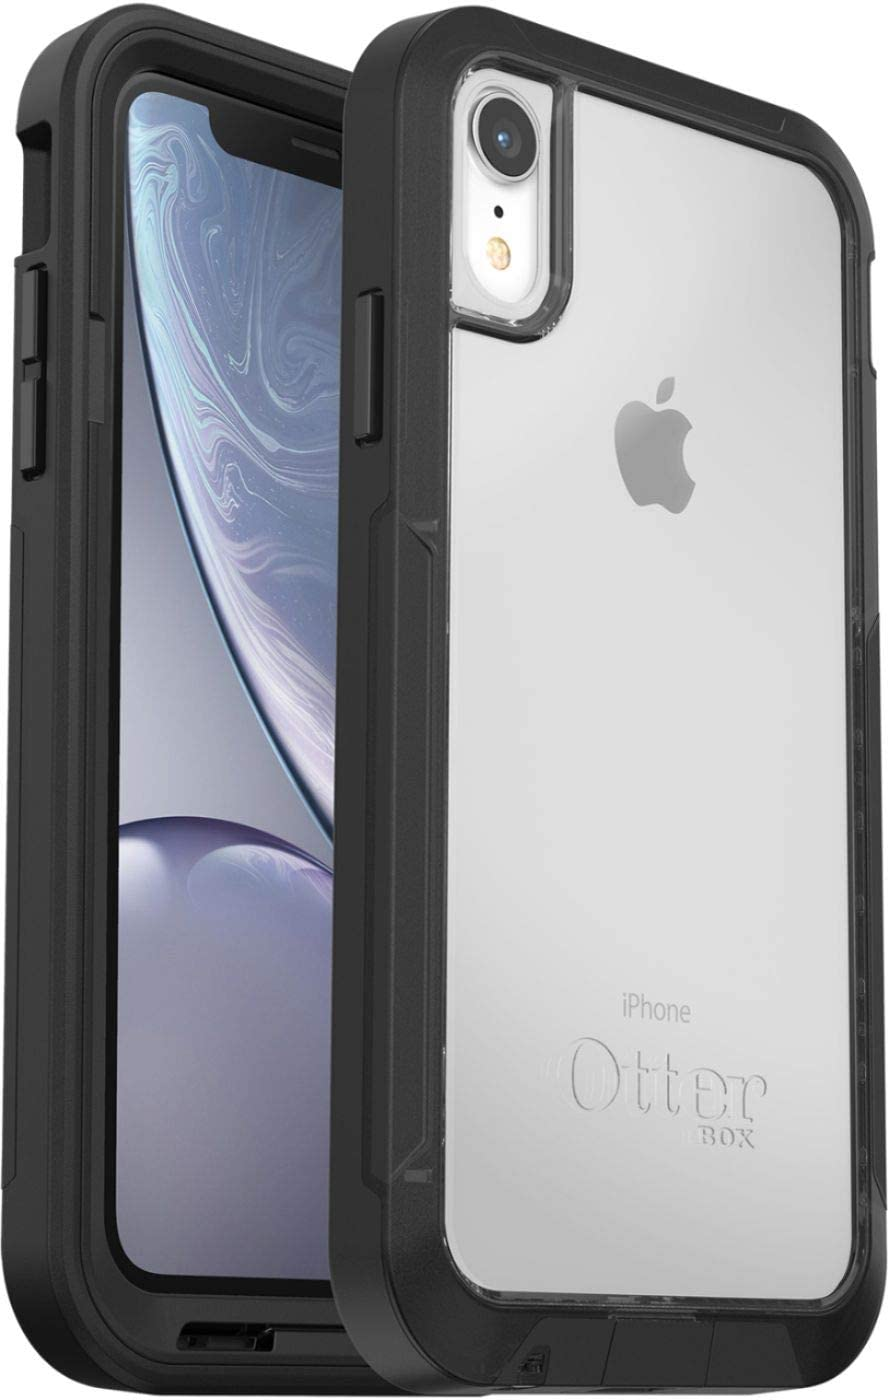 OtterBox Pursuit Series Case for iPhone XR (ONLY) Non-Retail Packaging - Black/Clear